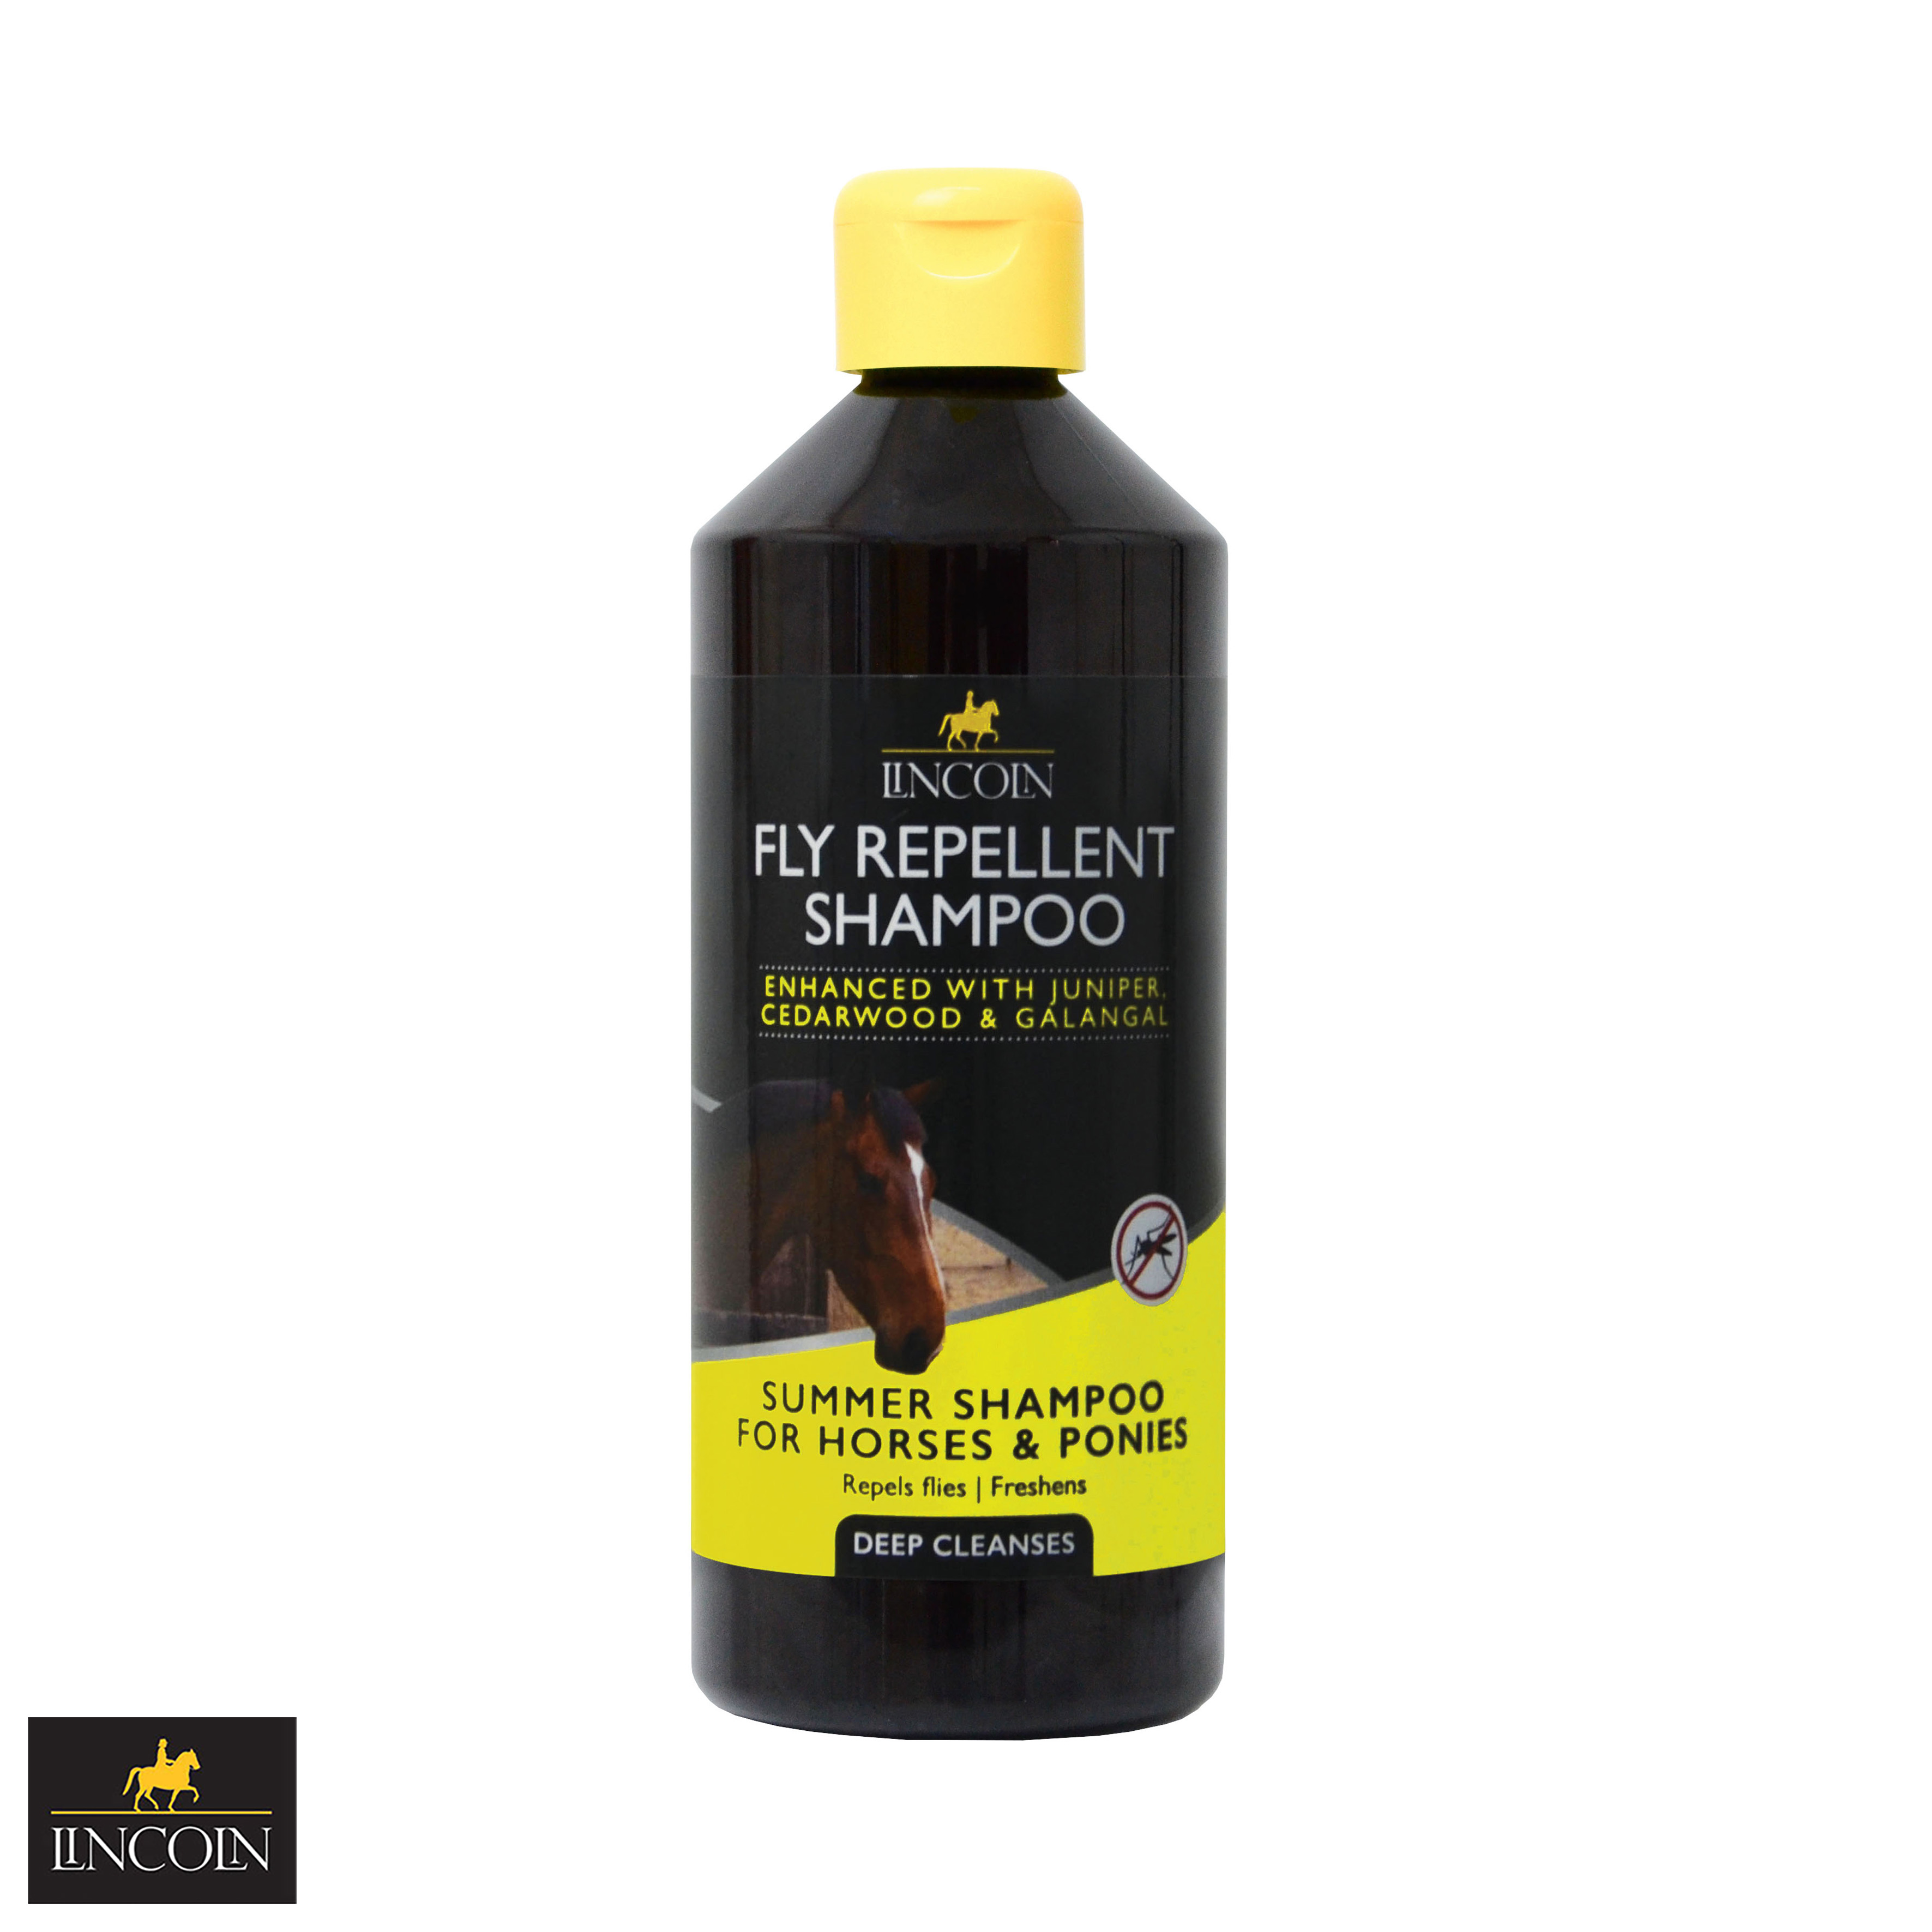 Lincoln Fly Repellent Shampoo